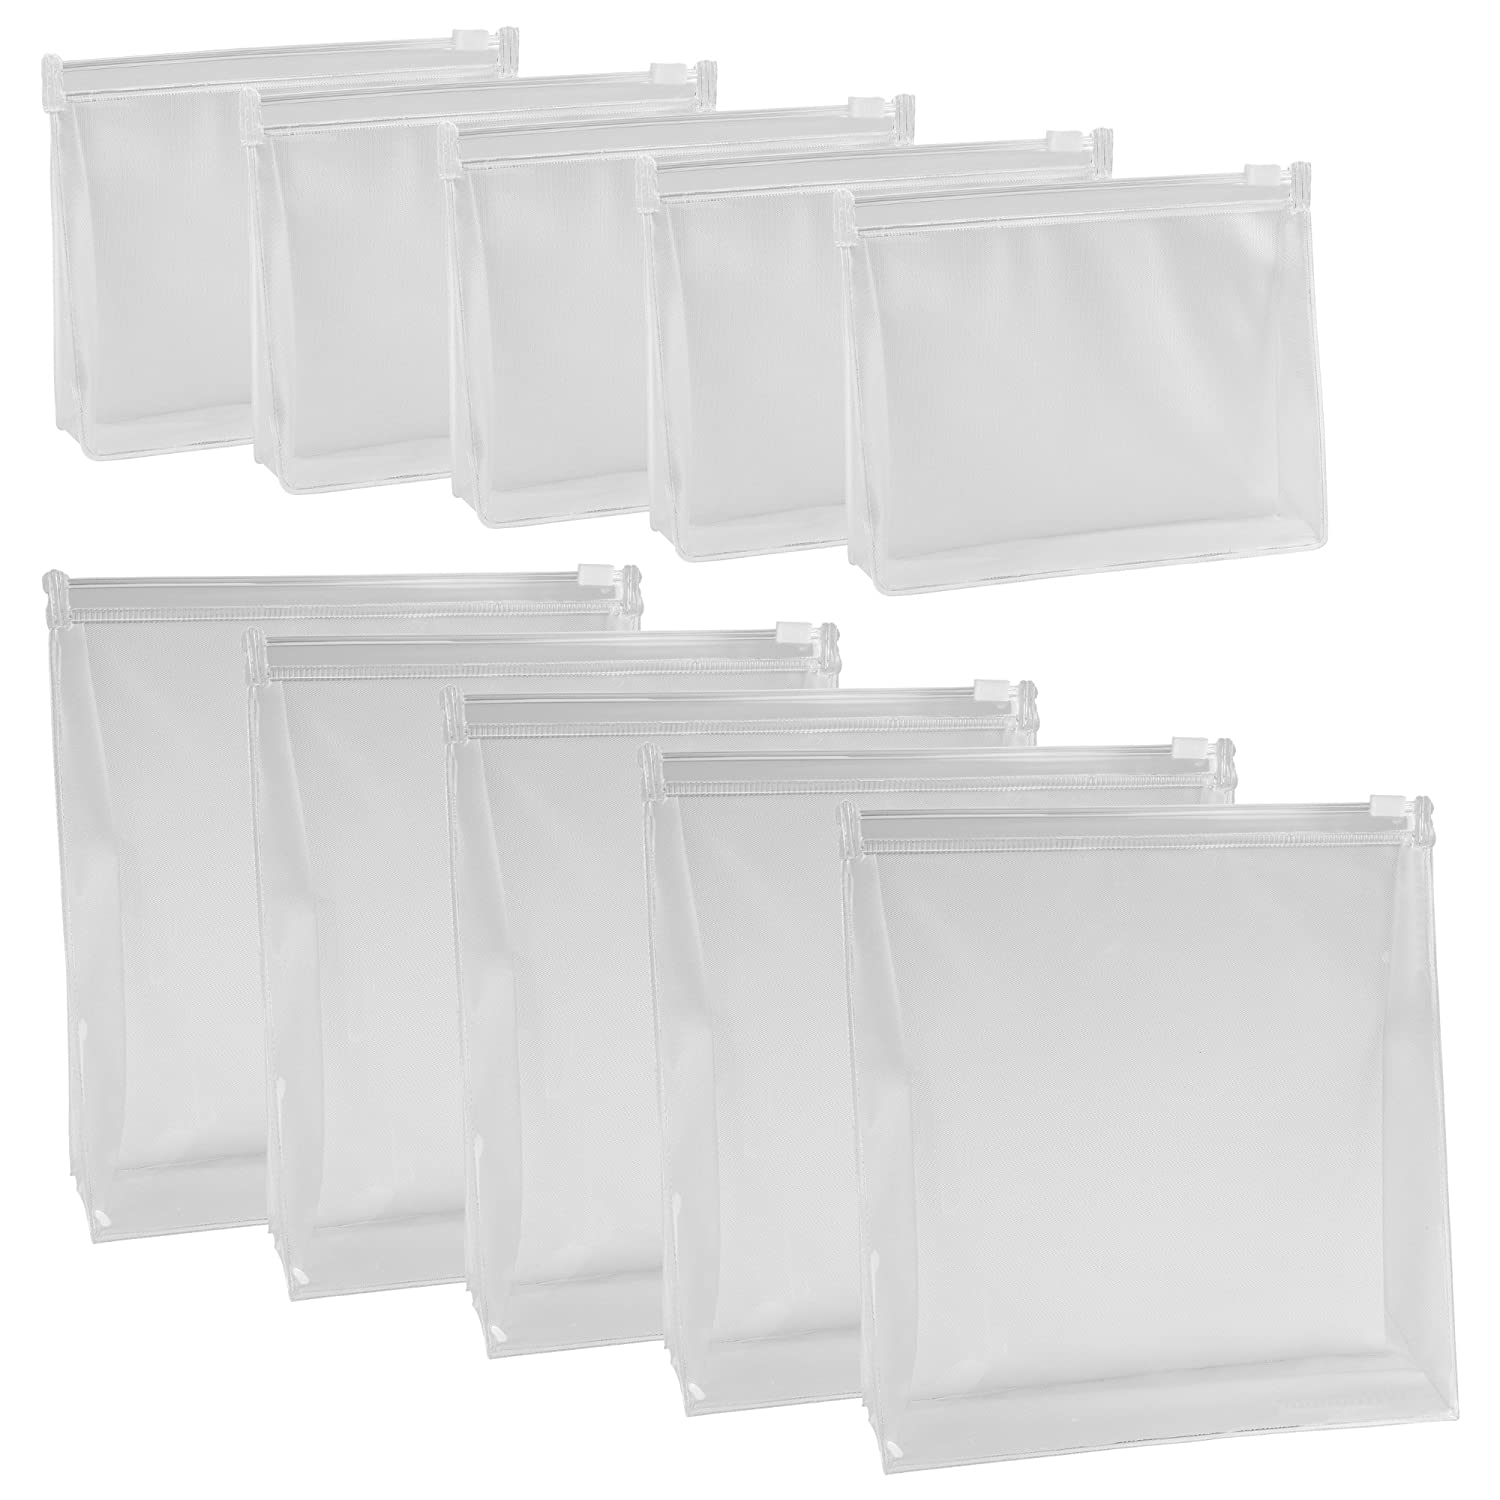 BCP 10 PCS Small Large PVC Transparent Plastic Cosmetic Organizer Bag Pouch With Zipper Closure,Travel Toiletry Makeup Bag 6 x 4.5 Inch,7 x 7.5 Inch